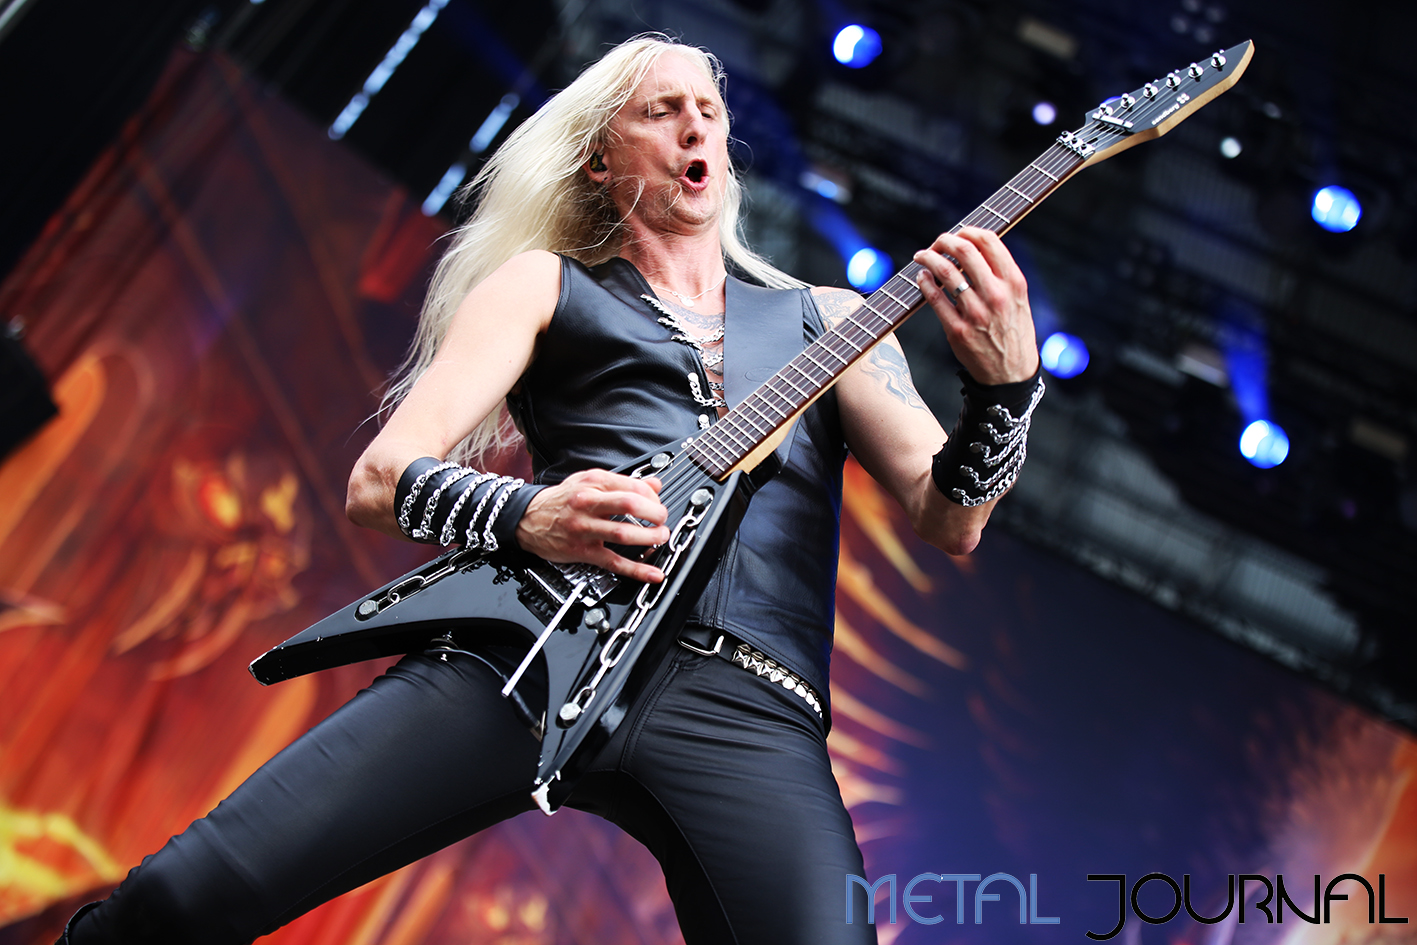 hammerfall - metal journal rock fest barcelona 2019 pic 2